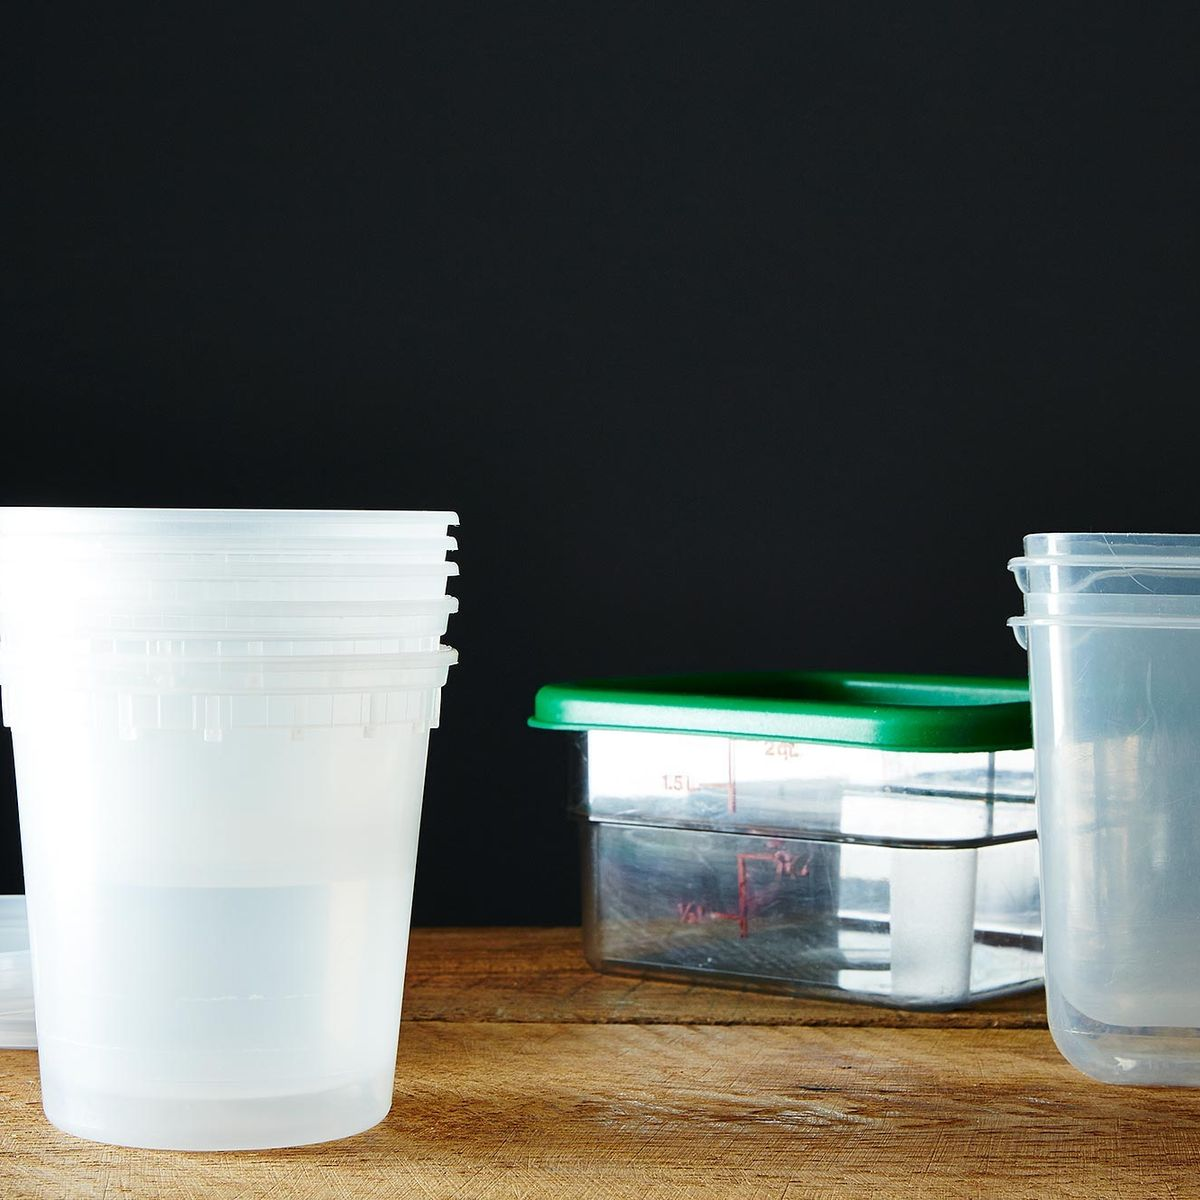 Ikea S 6 Food Container Set Is A Storage Staple But Not Perfect